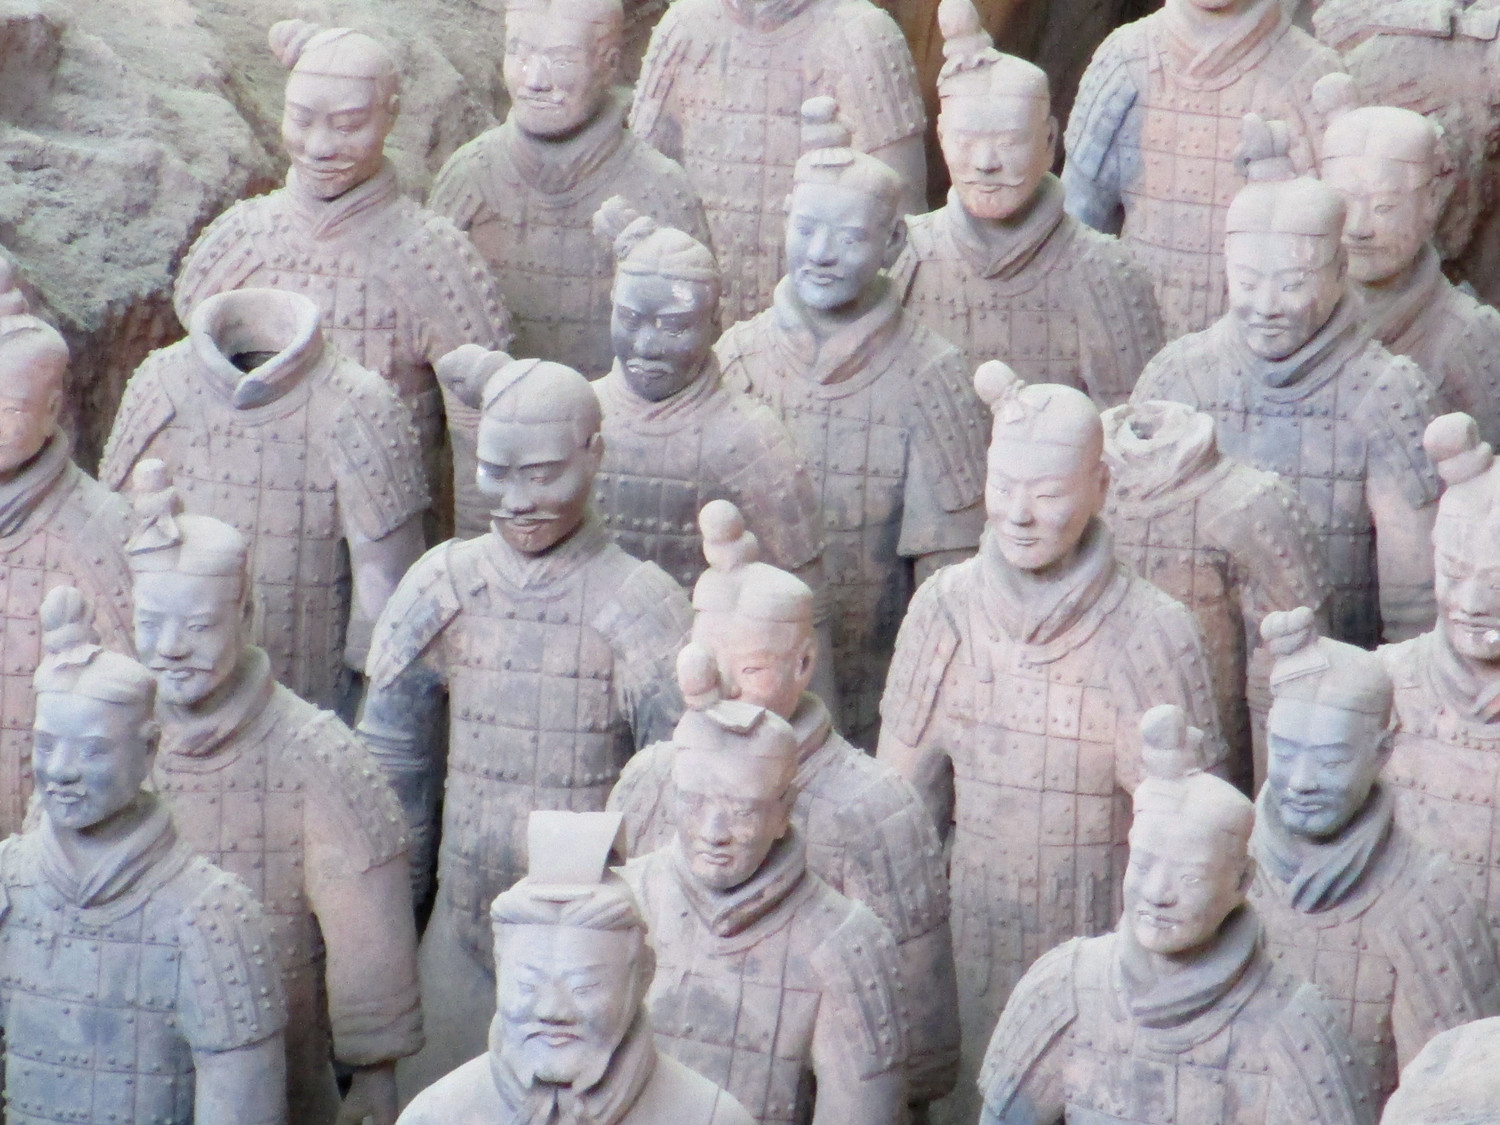 Terra Cotta Warriors and Horses Museum in China